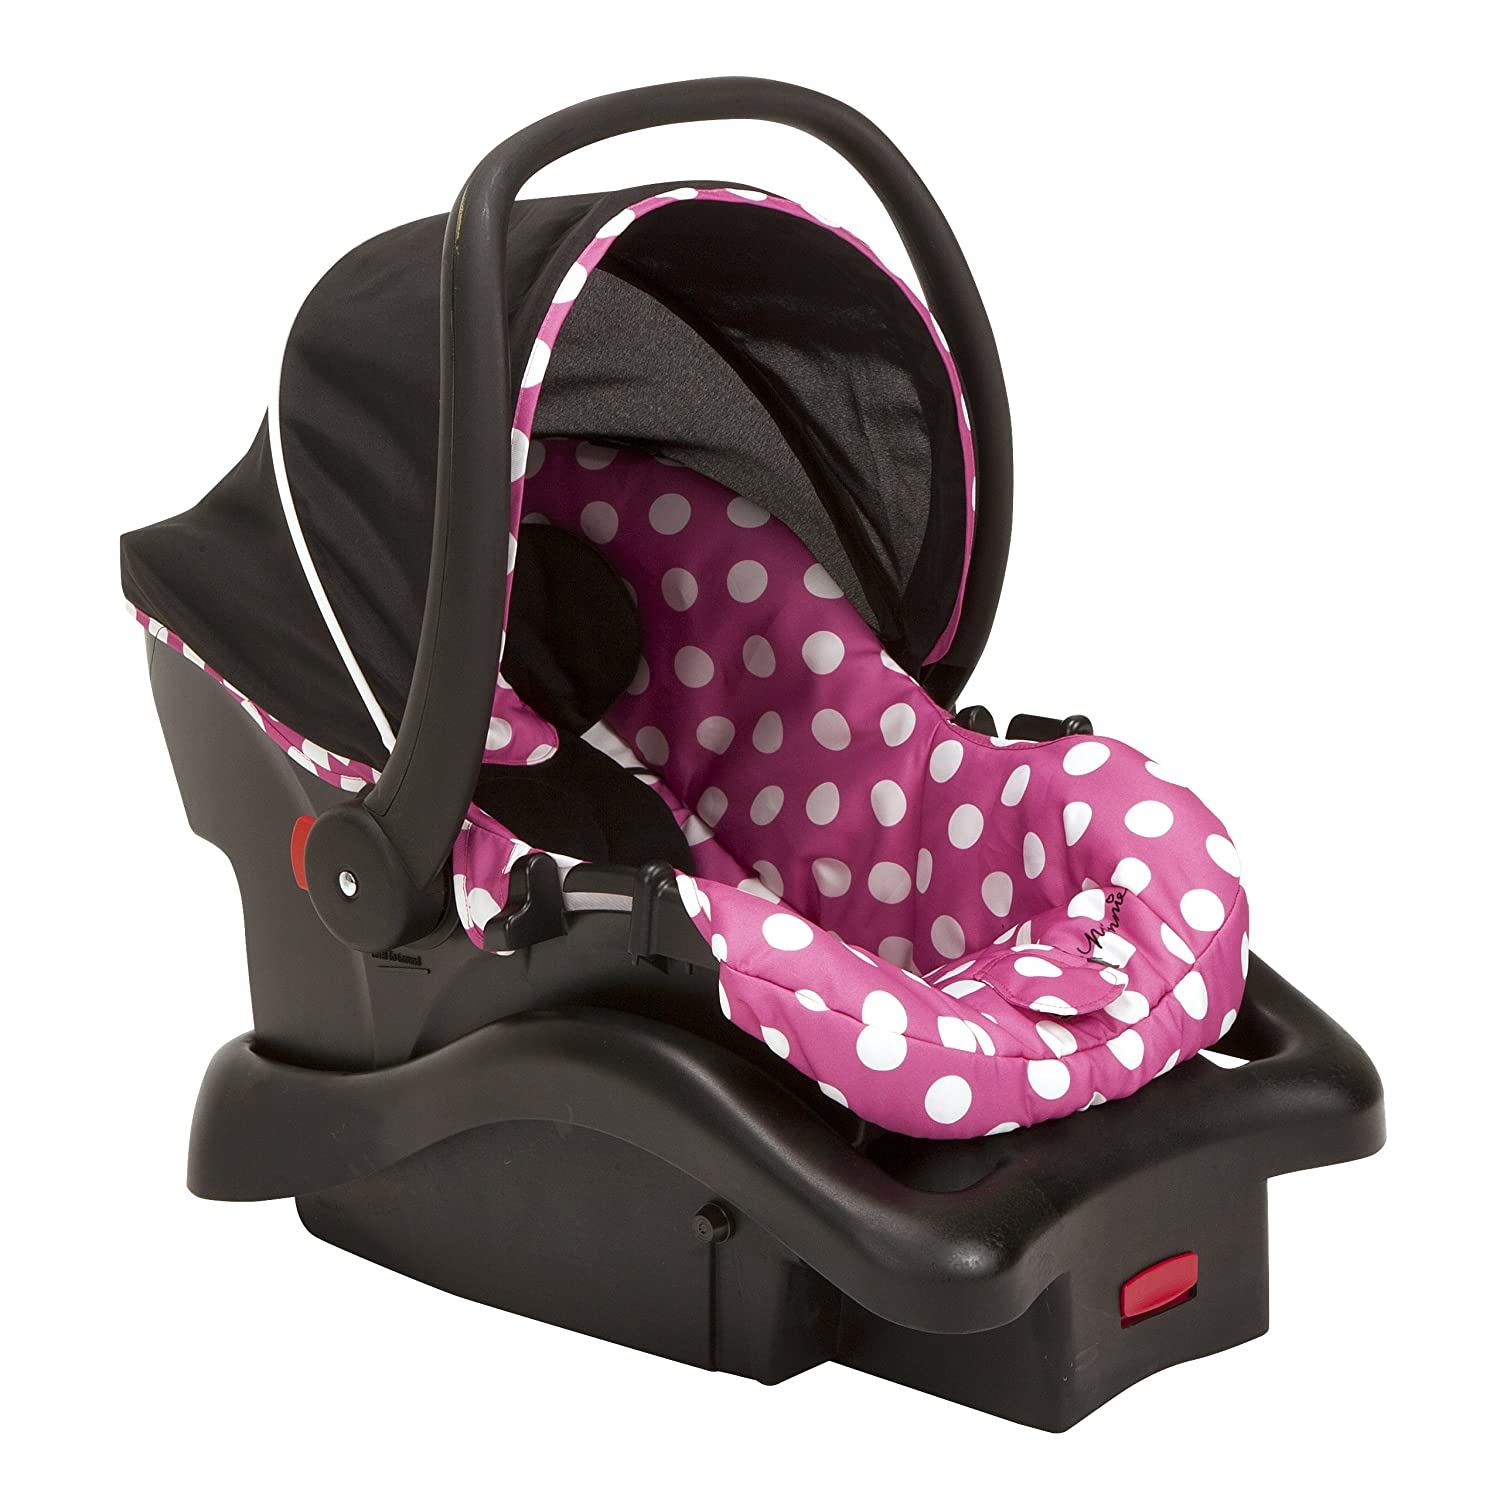 Amazon.com : Disney Light 'n Comfy Luxe Infant Car Seat, Minnie Dot